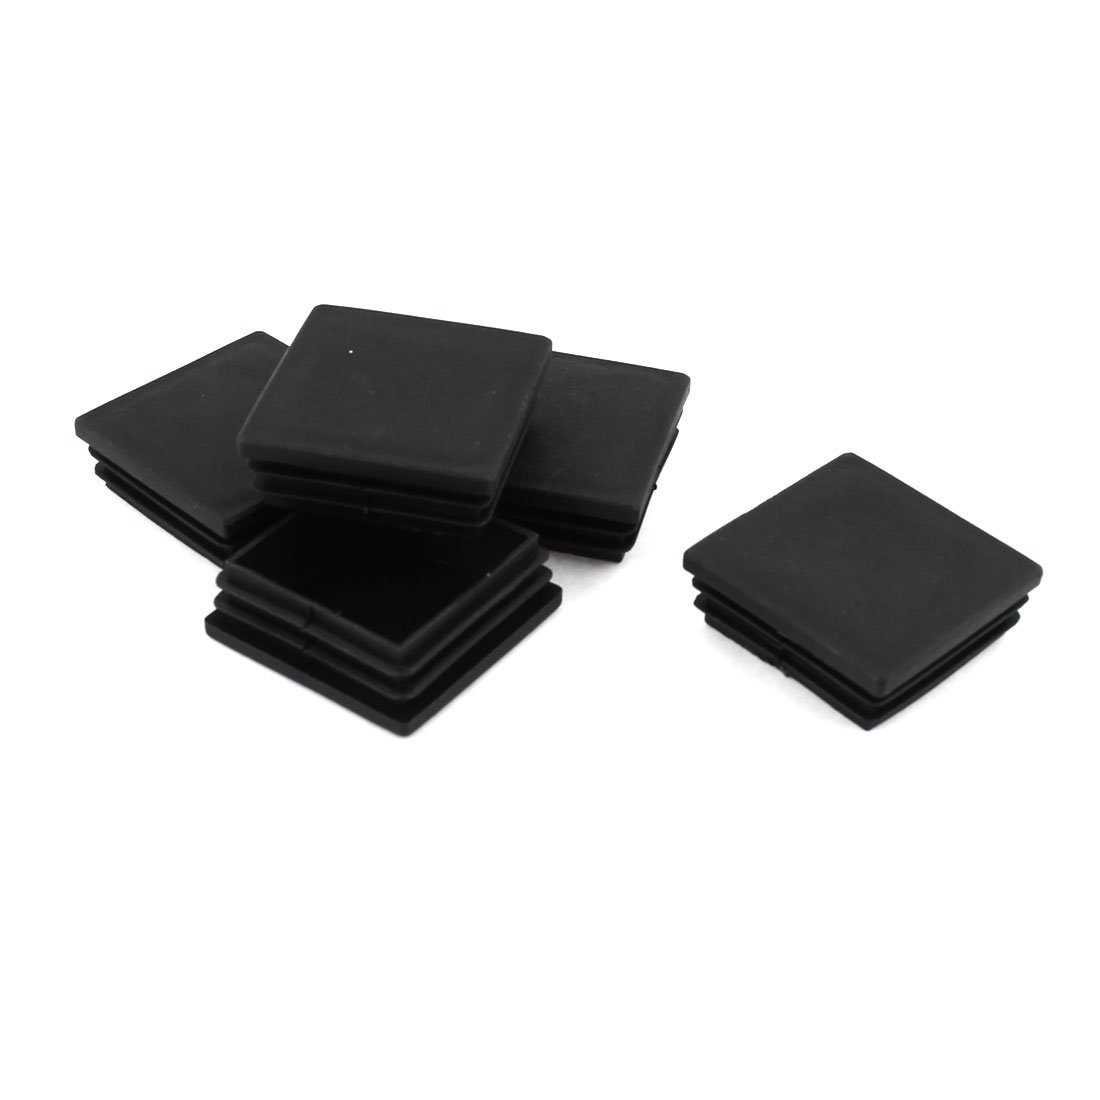 uxcell Plastic Square Tubing Inserts End Blanking Cover Caps 50mmx50mm 5 Pcs a15010700ux0309